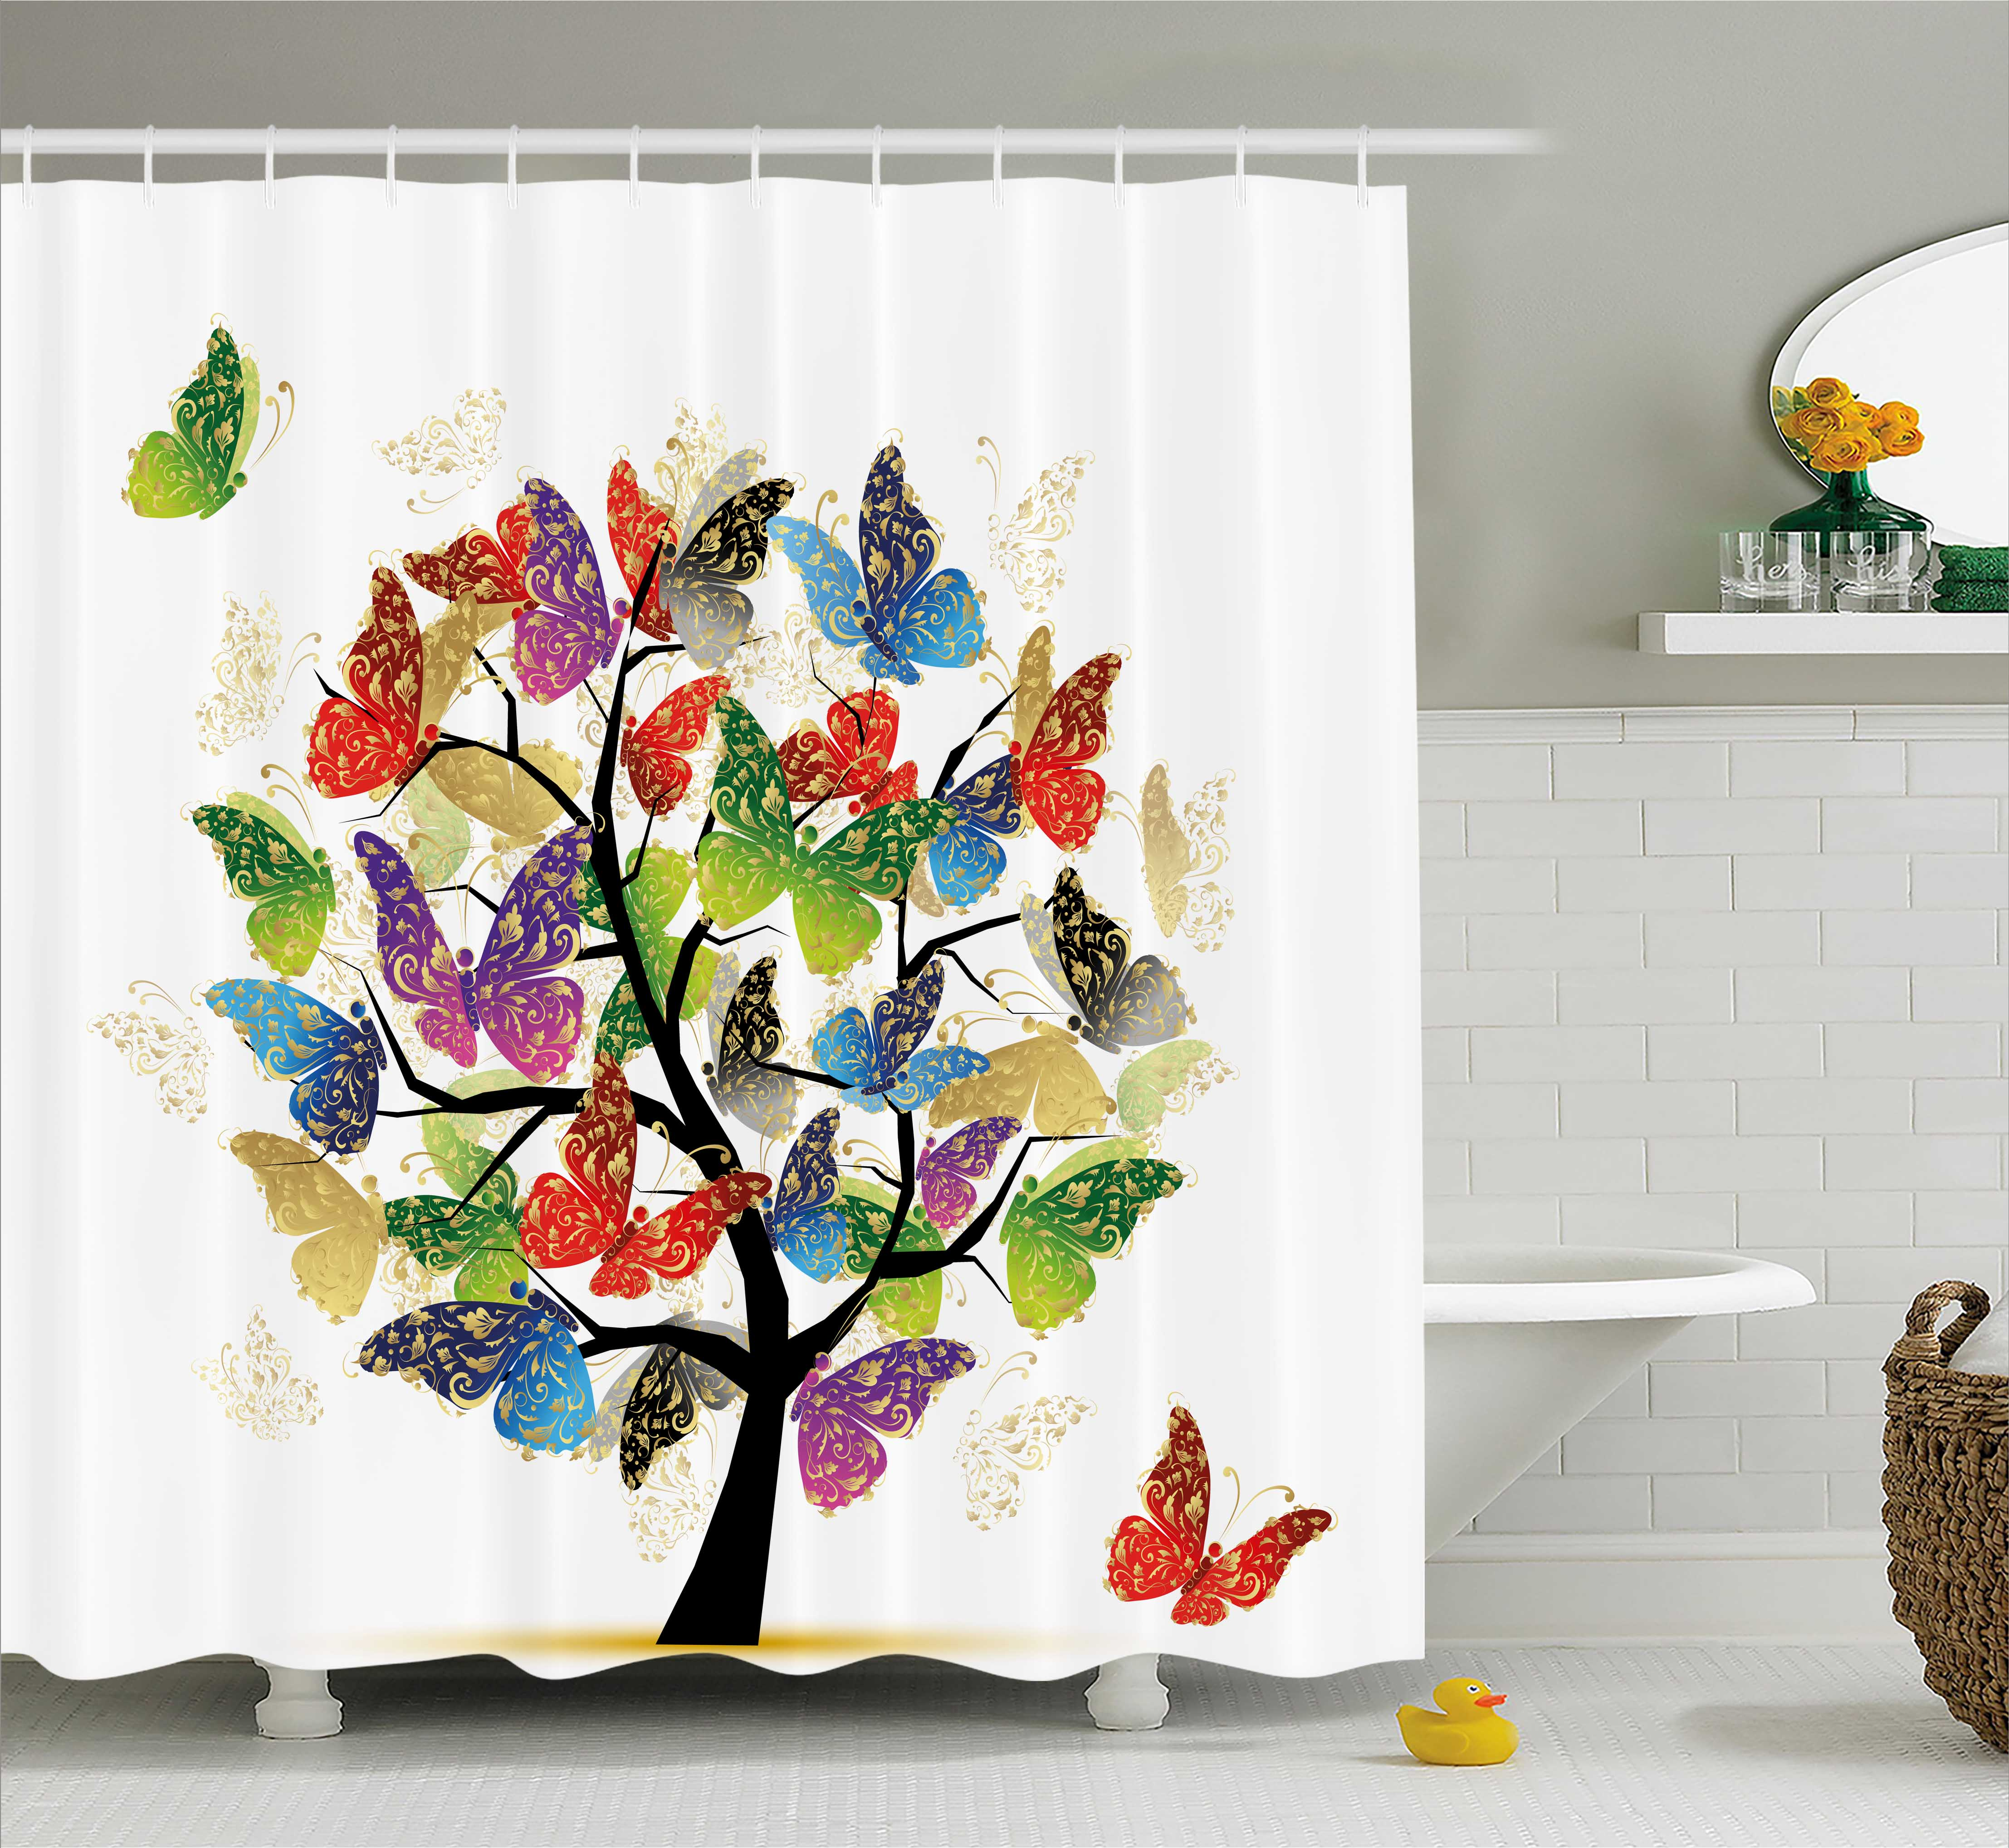 Modern Decor Shower Curtain, Artistic Nature Tree with Floral Butterflies Leaves Vivid Vibrant Art Print, Fabric Bathroom Set with Hooks, 69W X 84L Inches Extra Long, Multicolor, by Ambesonne